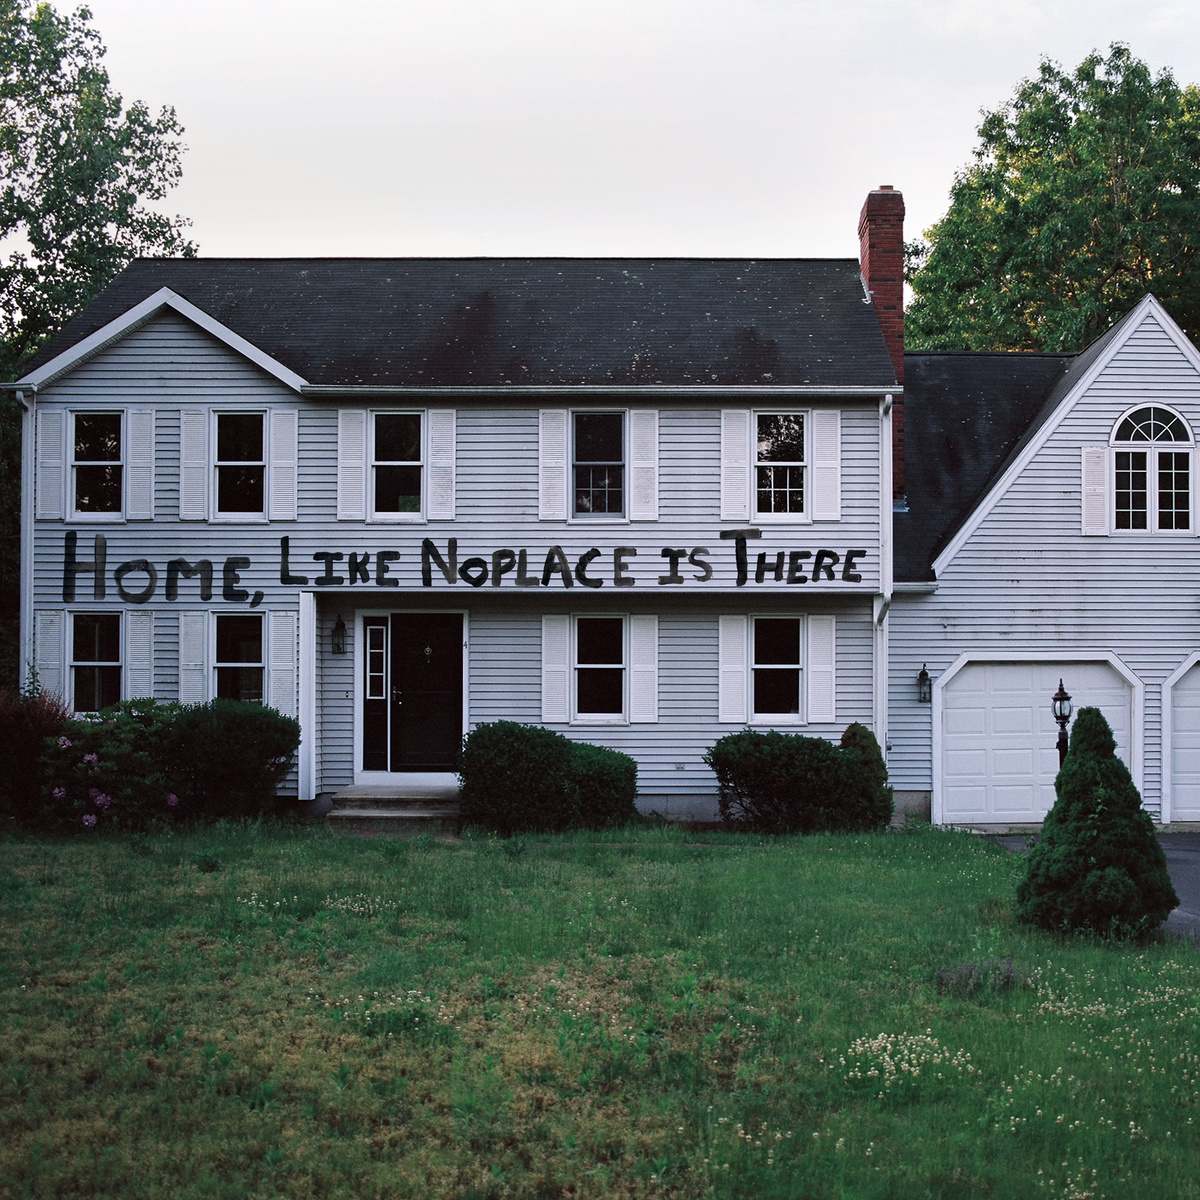 The Hotelier — Home, Like Noplace Is There